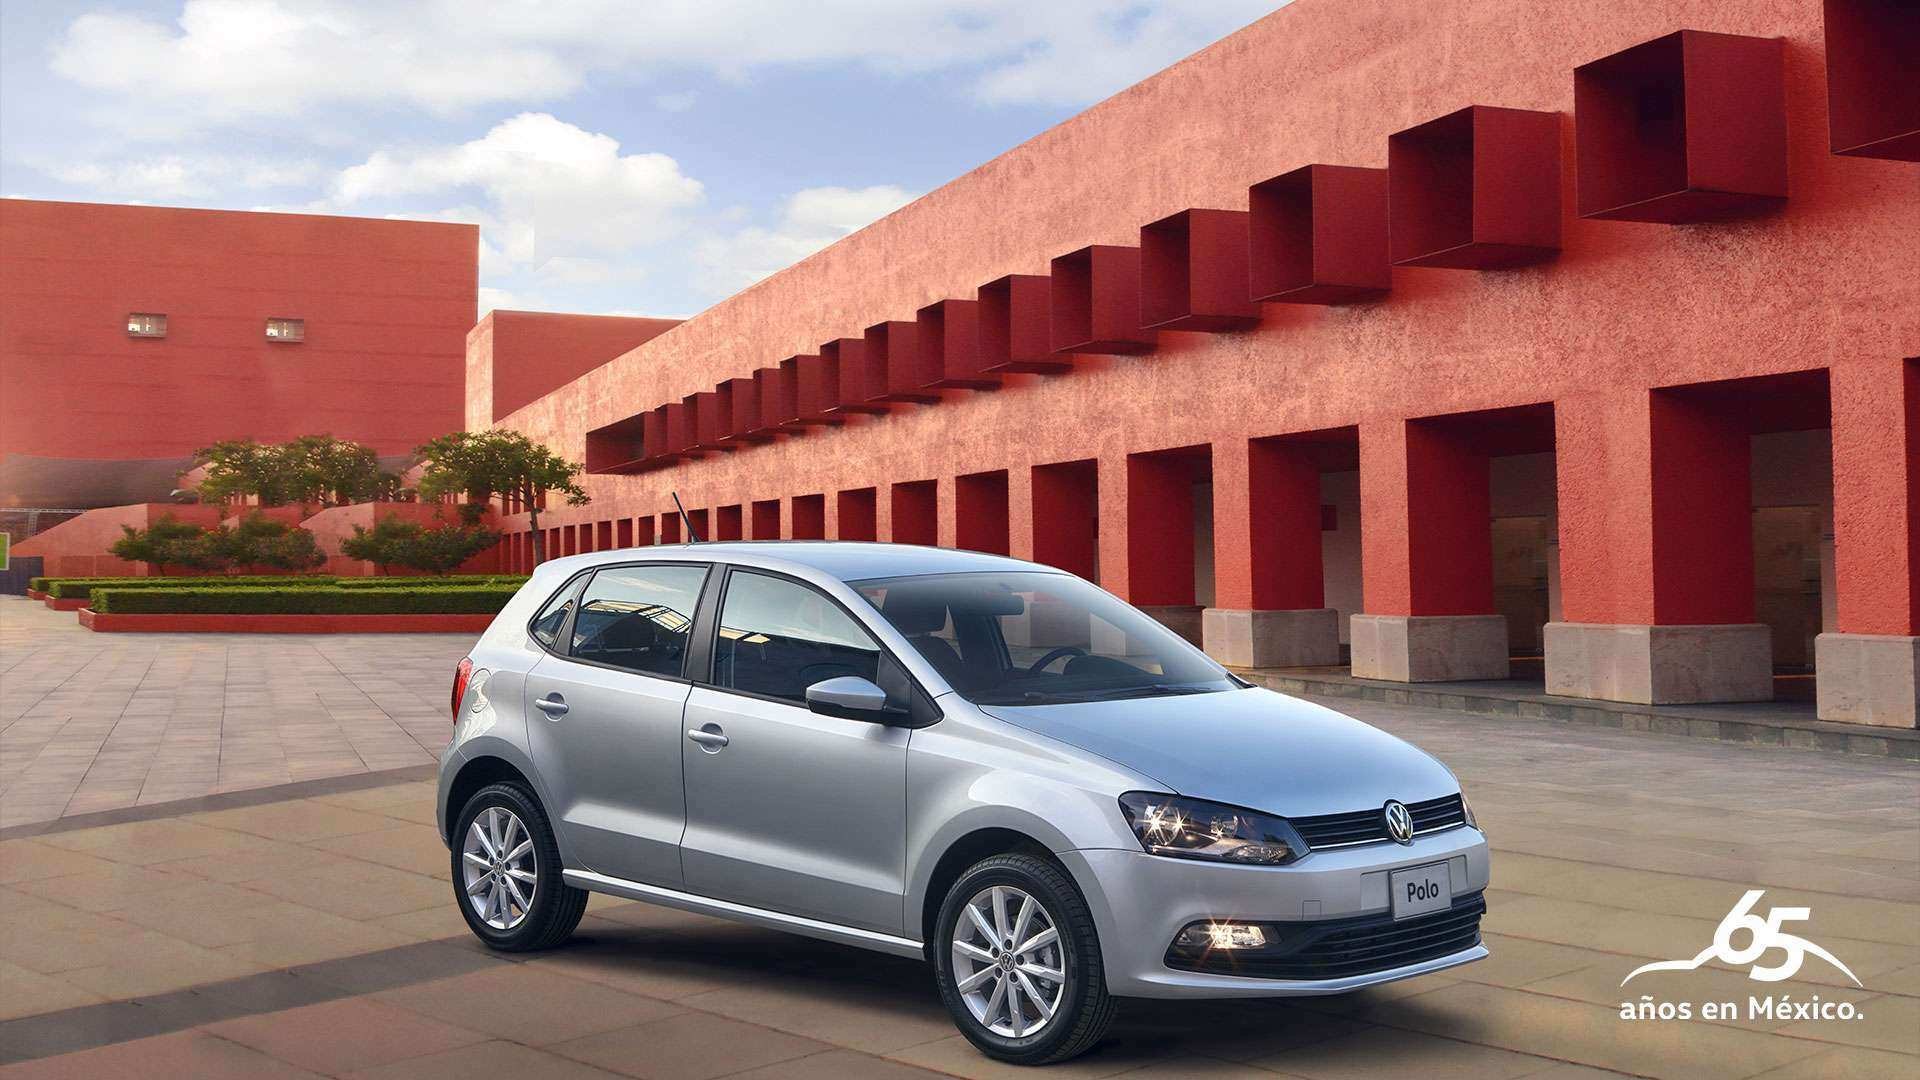 73 New Volkswagen Polo 2020 Mexico Rumors